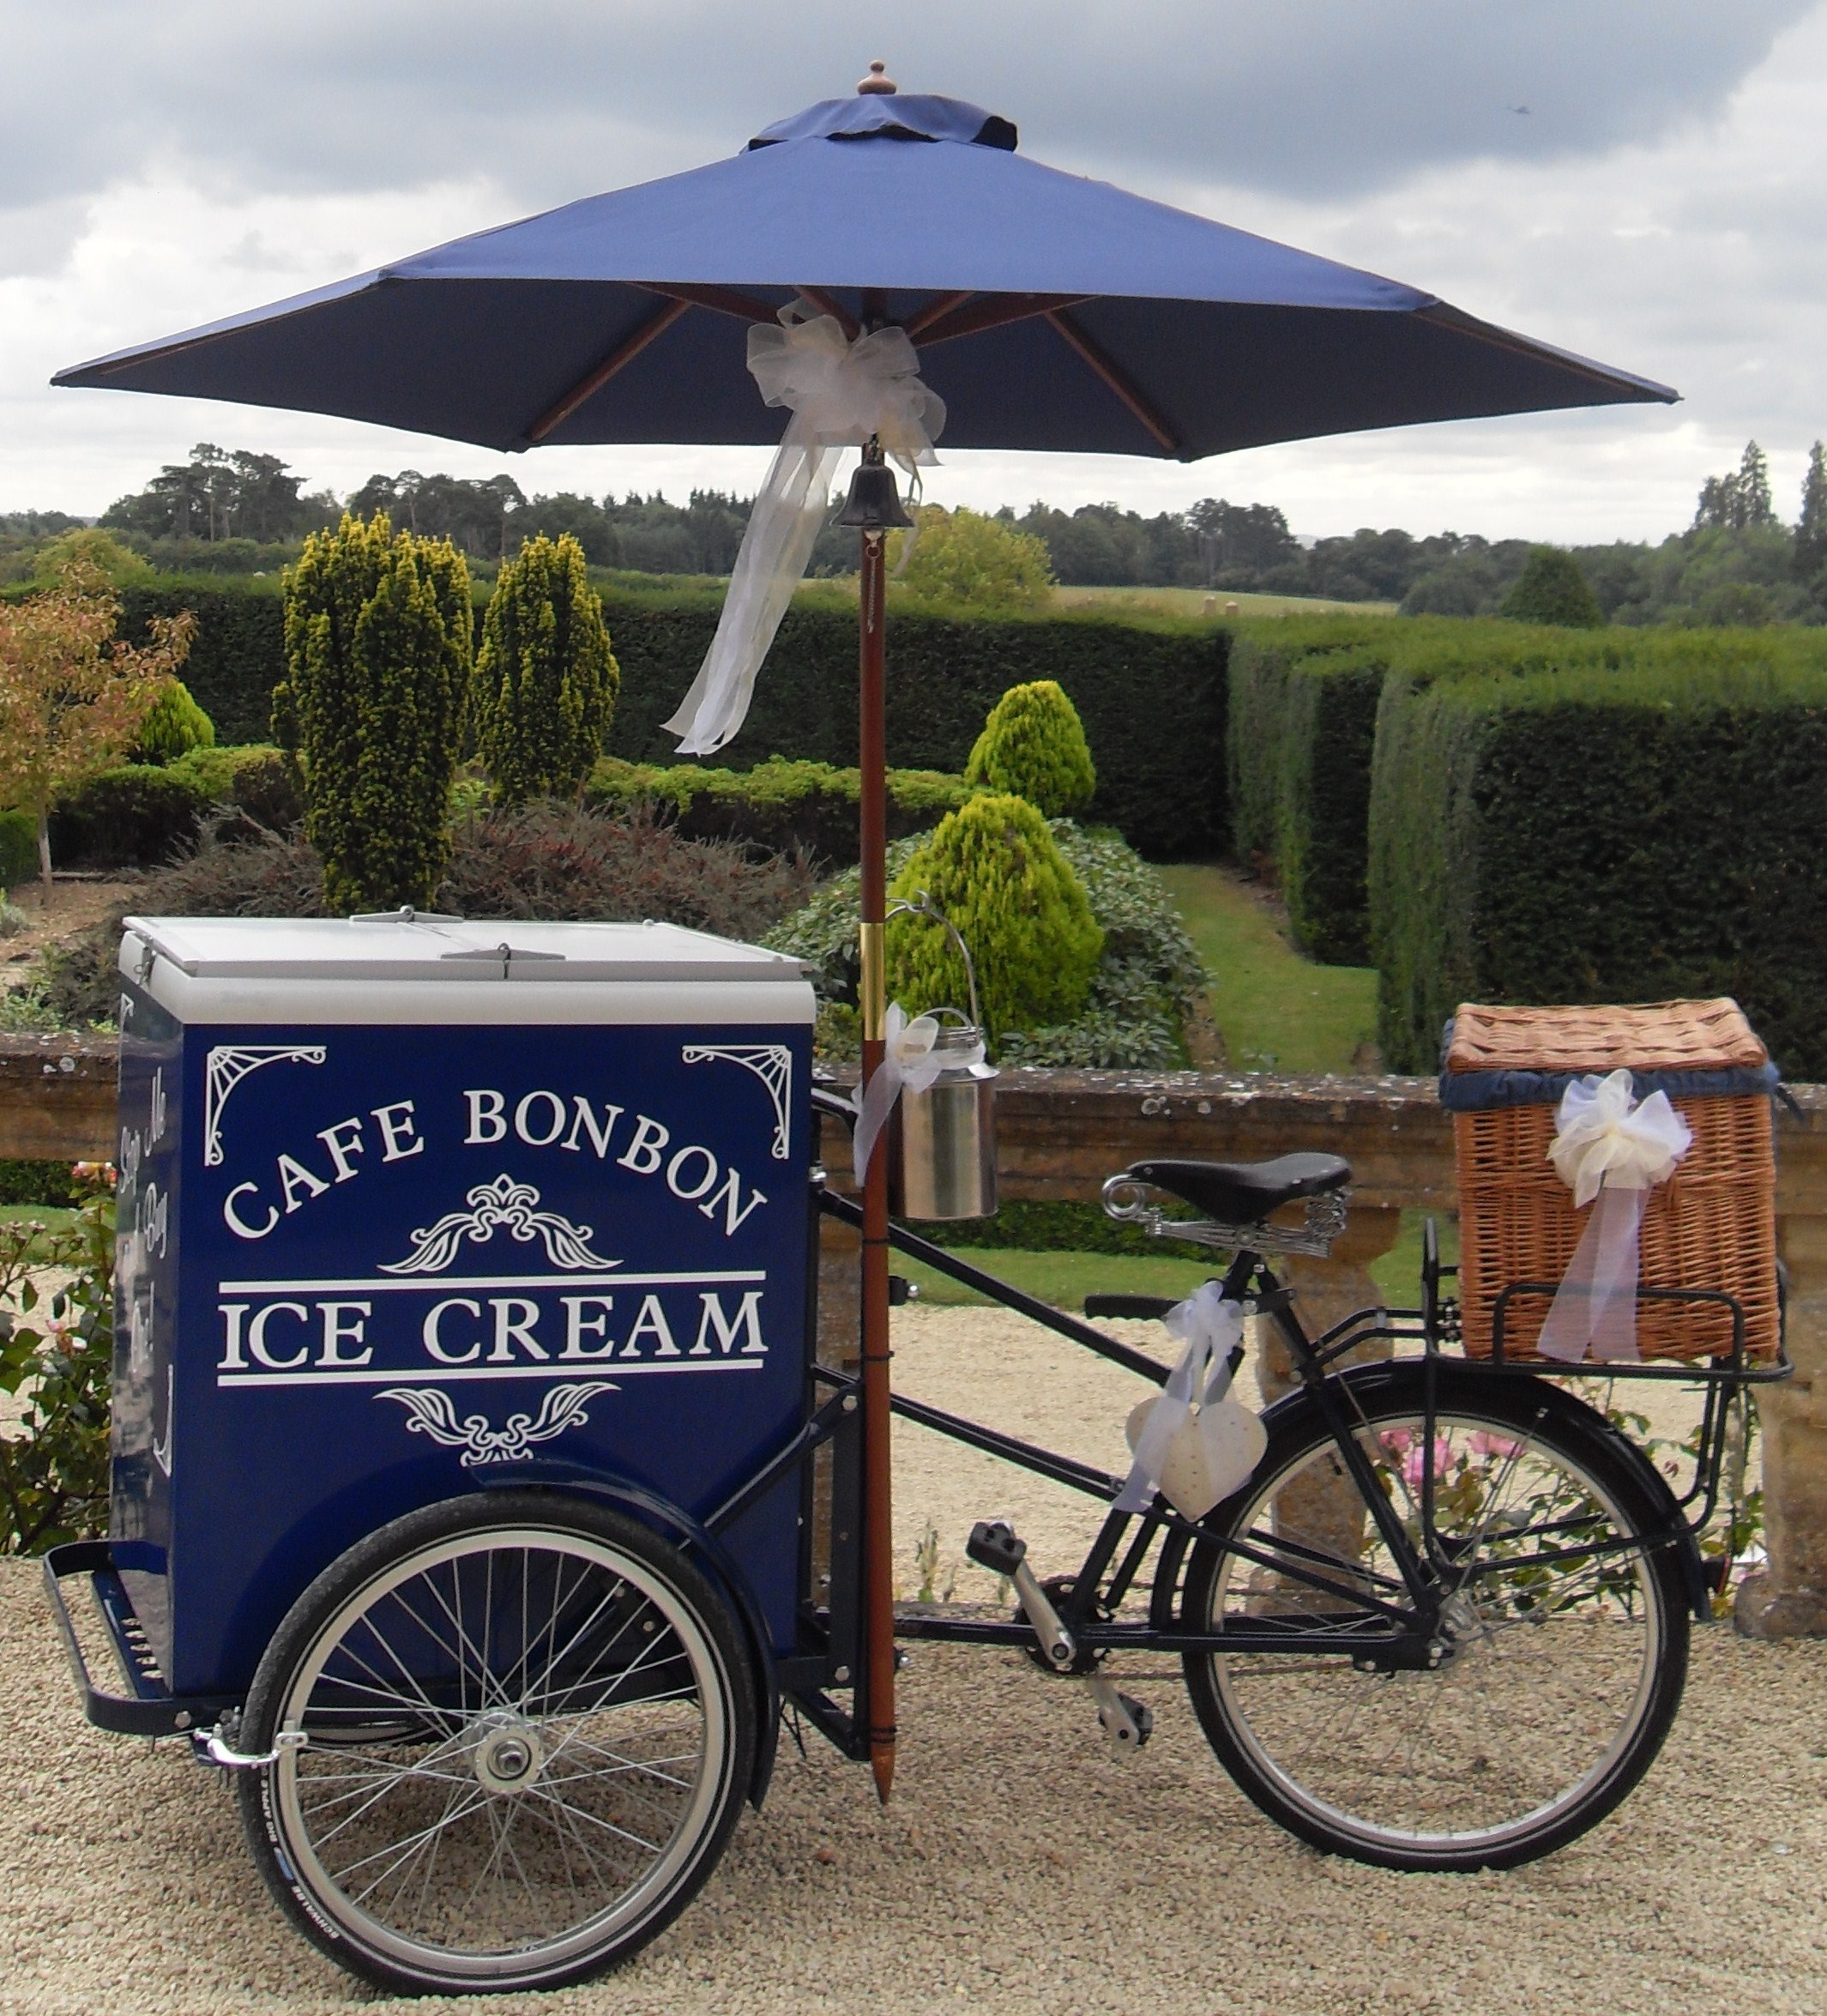 Cafe Bon Bon Ice Cream Amp Pimm S Tricycles Catering